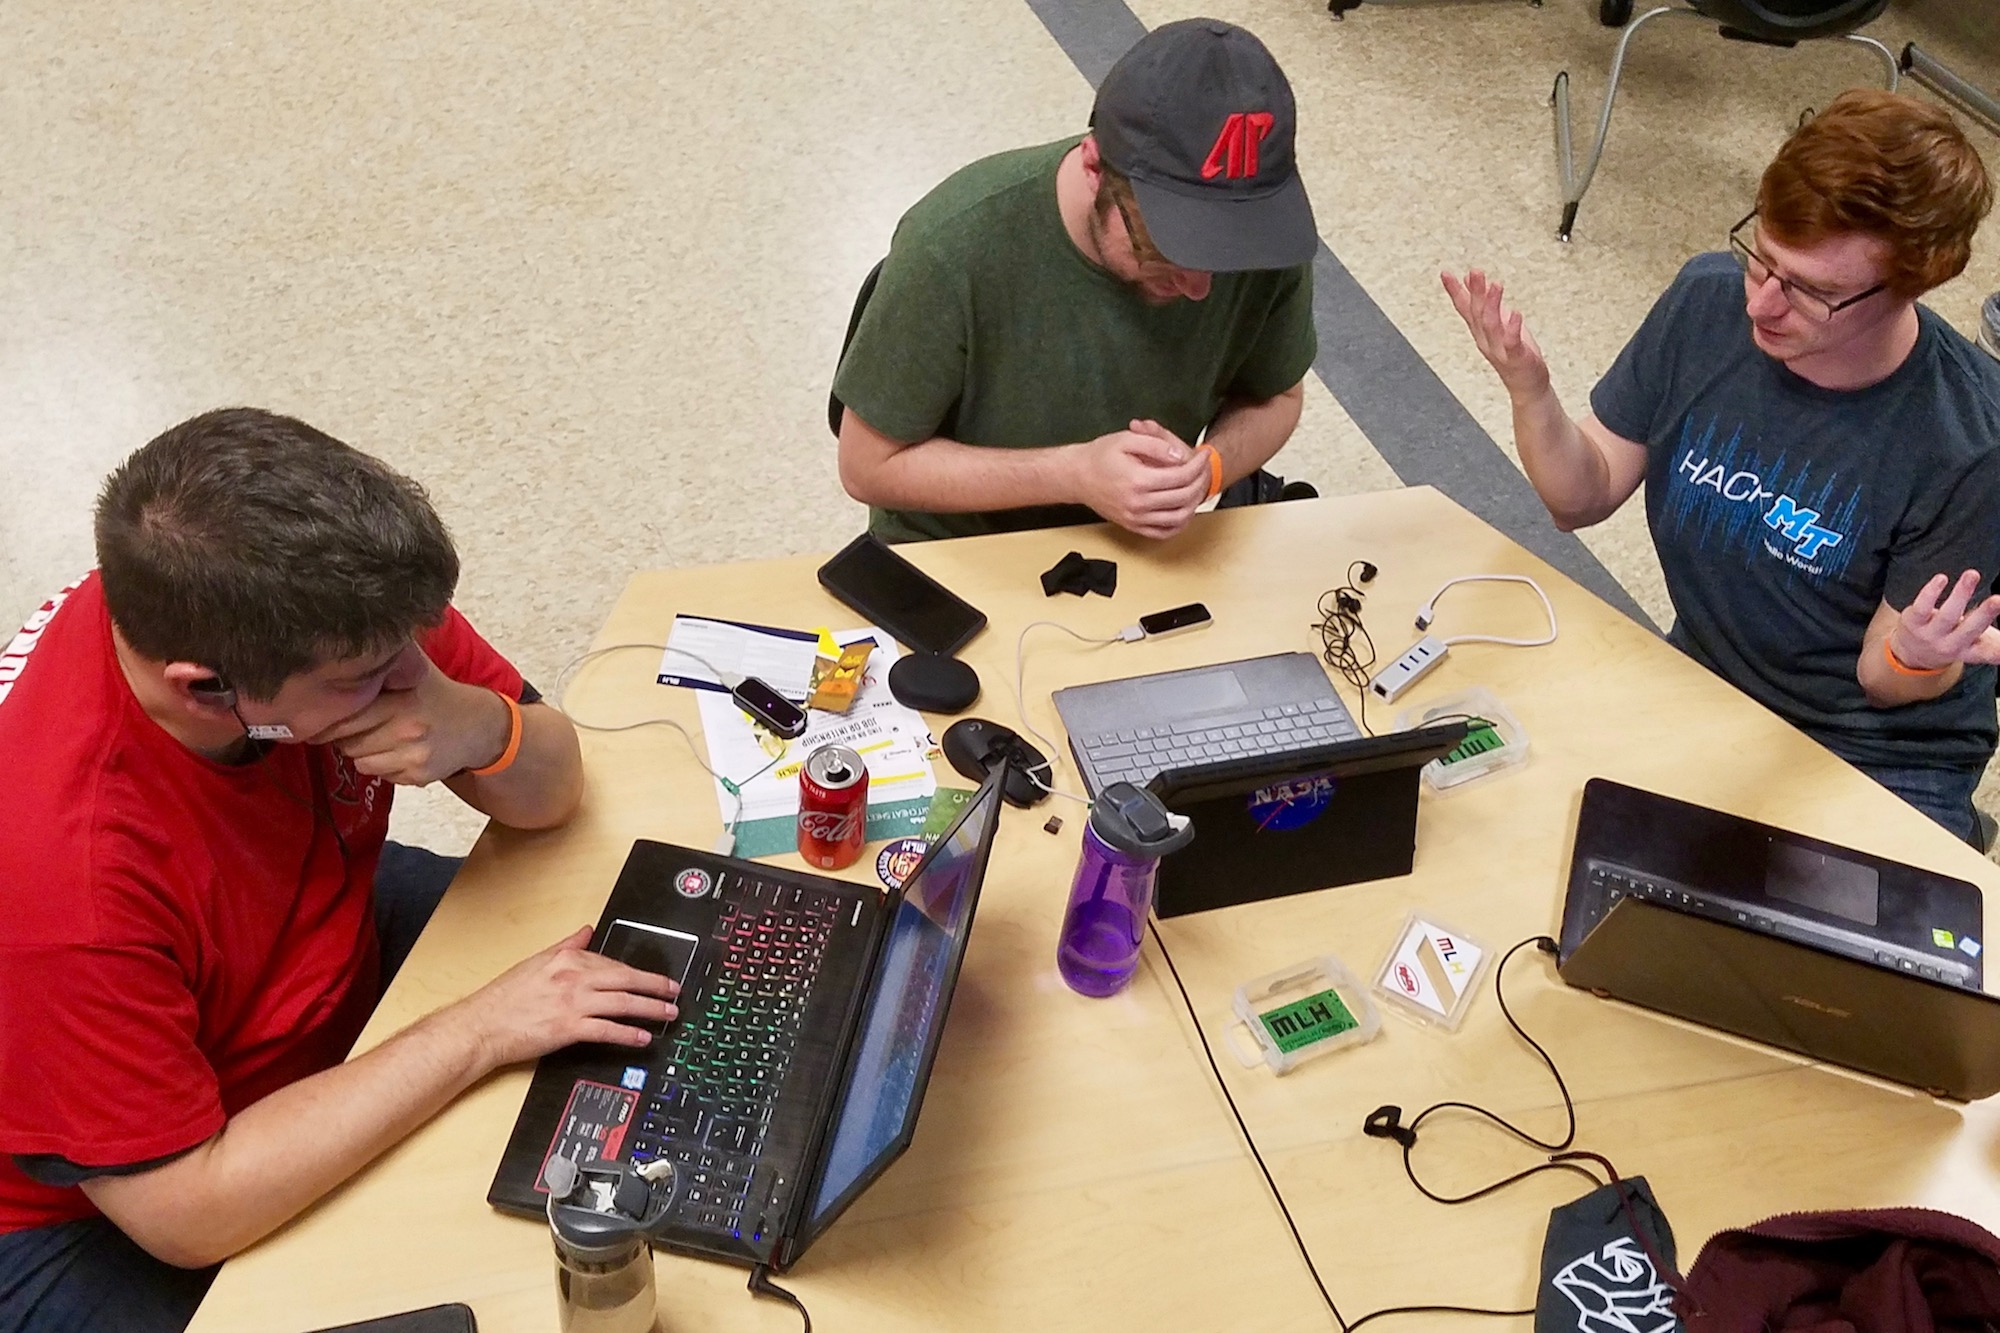 Austin Peay students win best solo hack, place second overall at regional hackathon